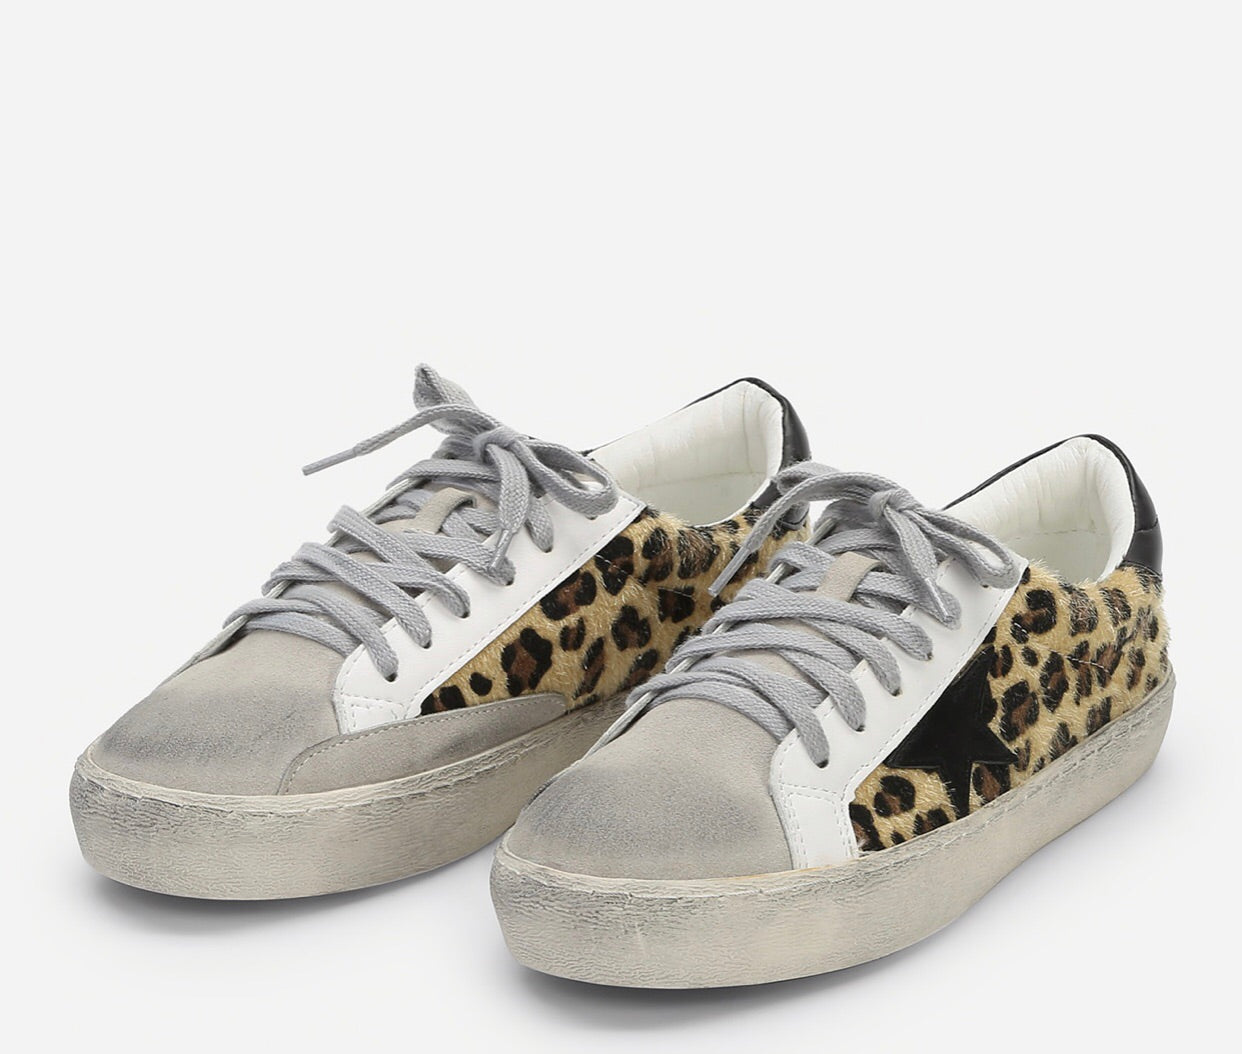 Star Sneakers in Leopard